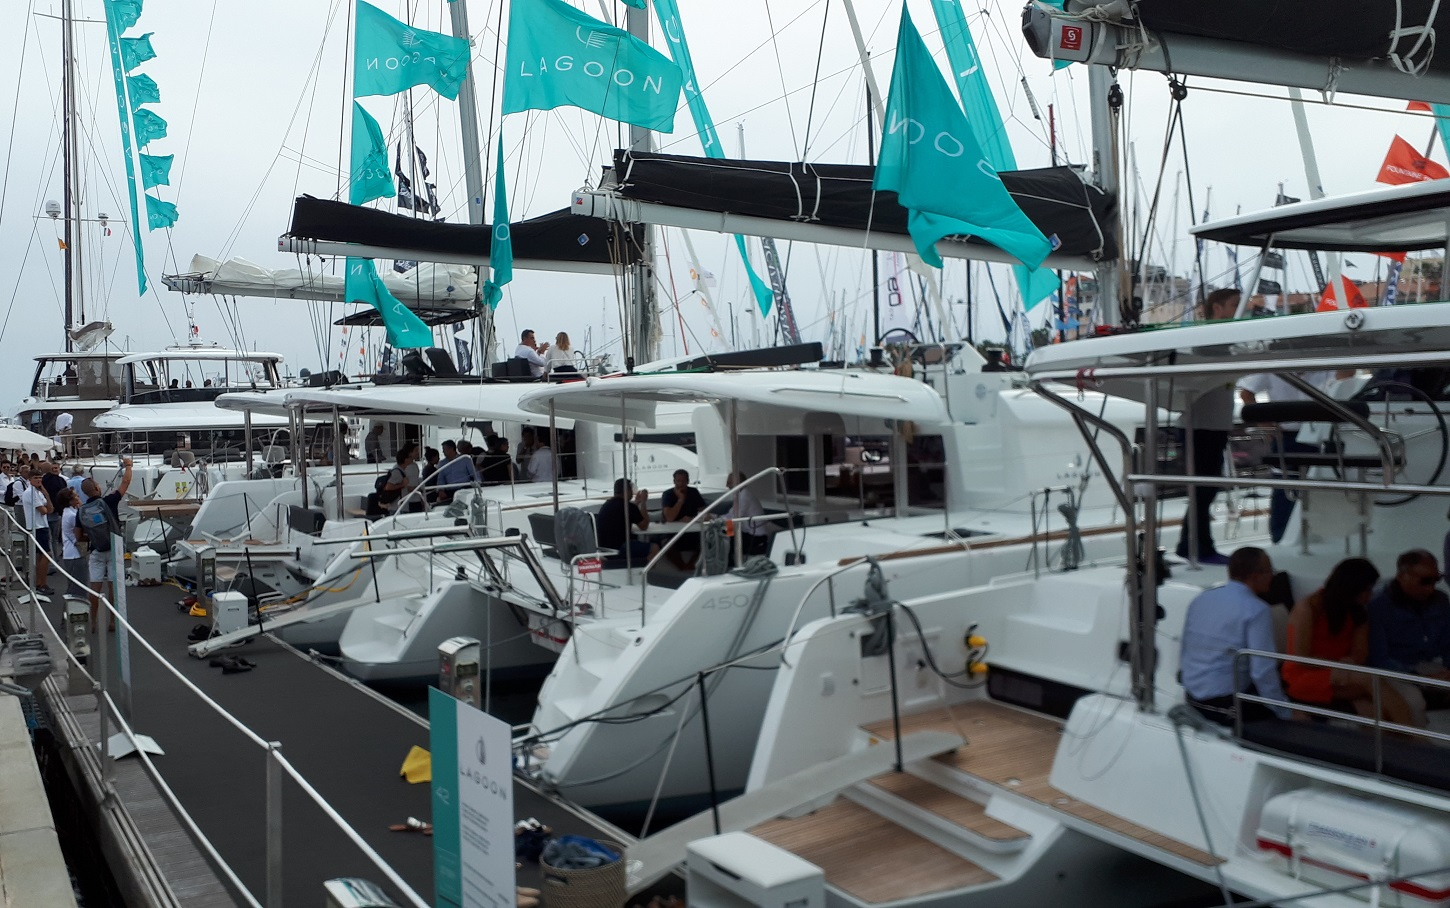 Lagoon cannes yachting festival